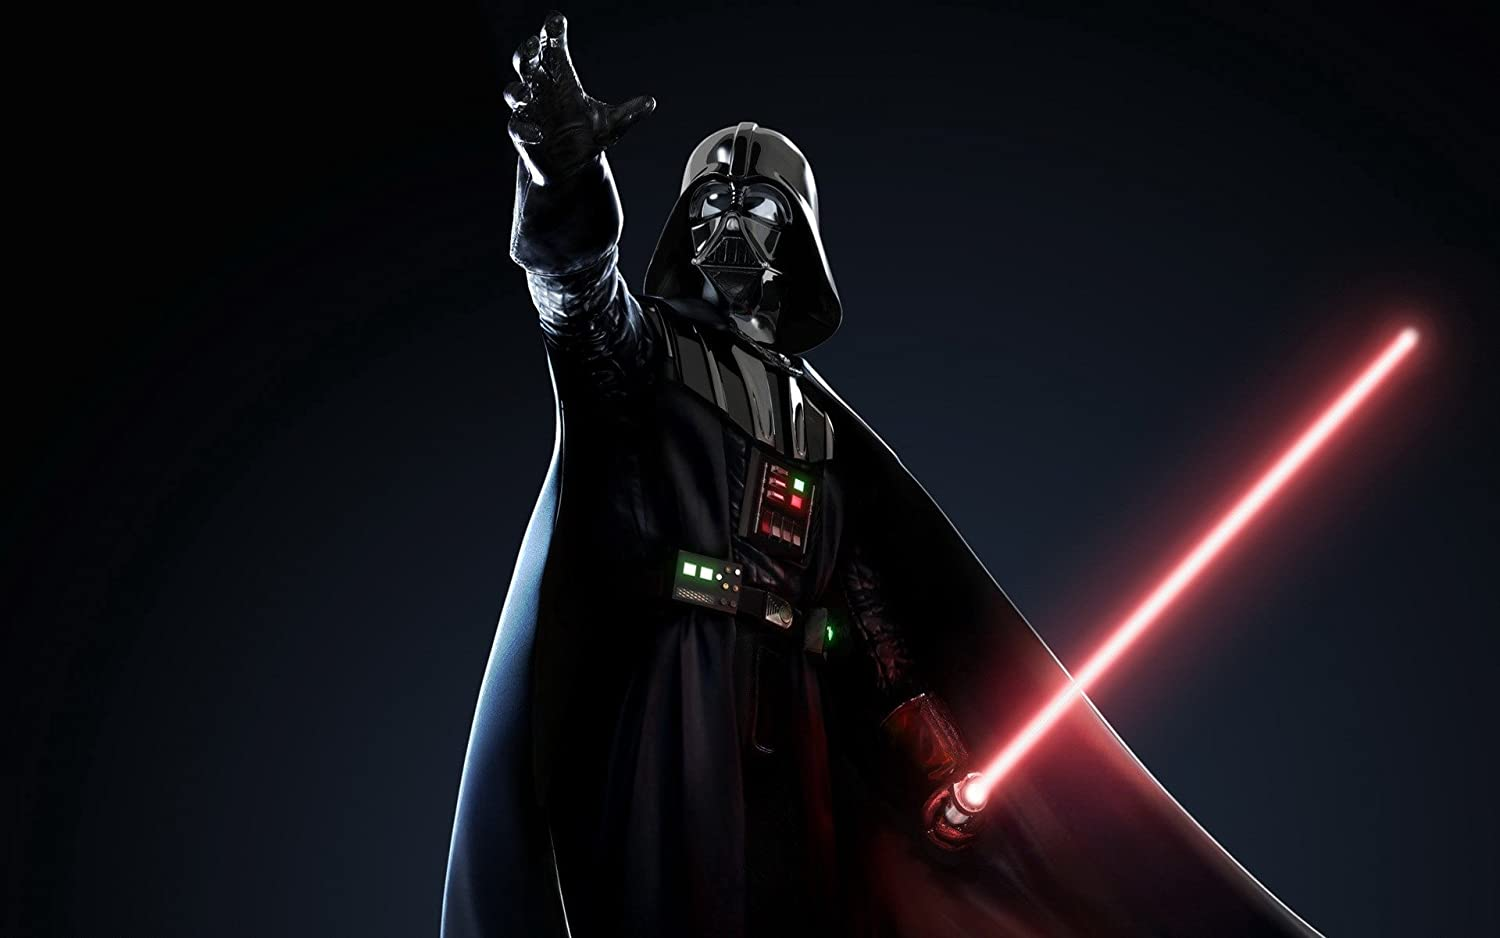 Posterhouzz Movie Star Wars Lightsaber Darth Vader Hd Wallpaper